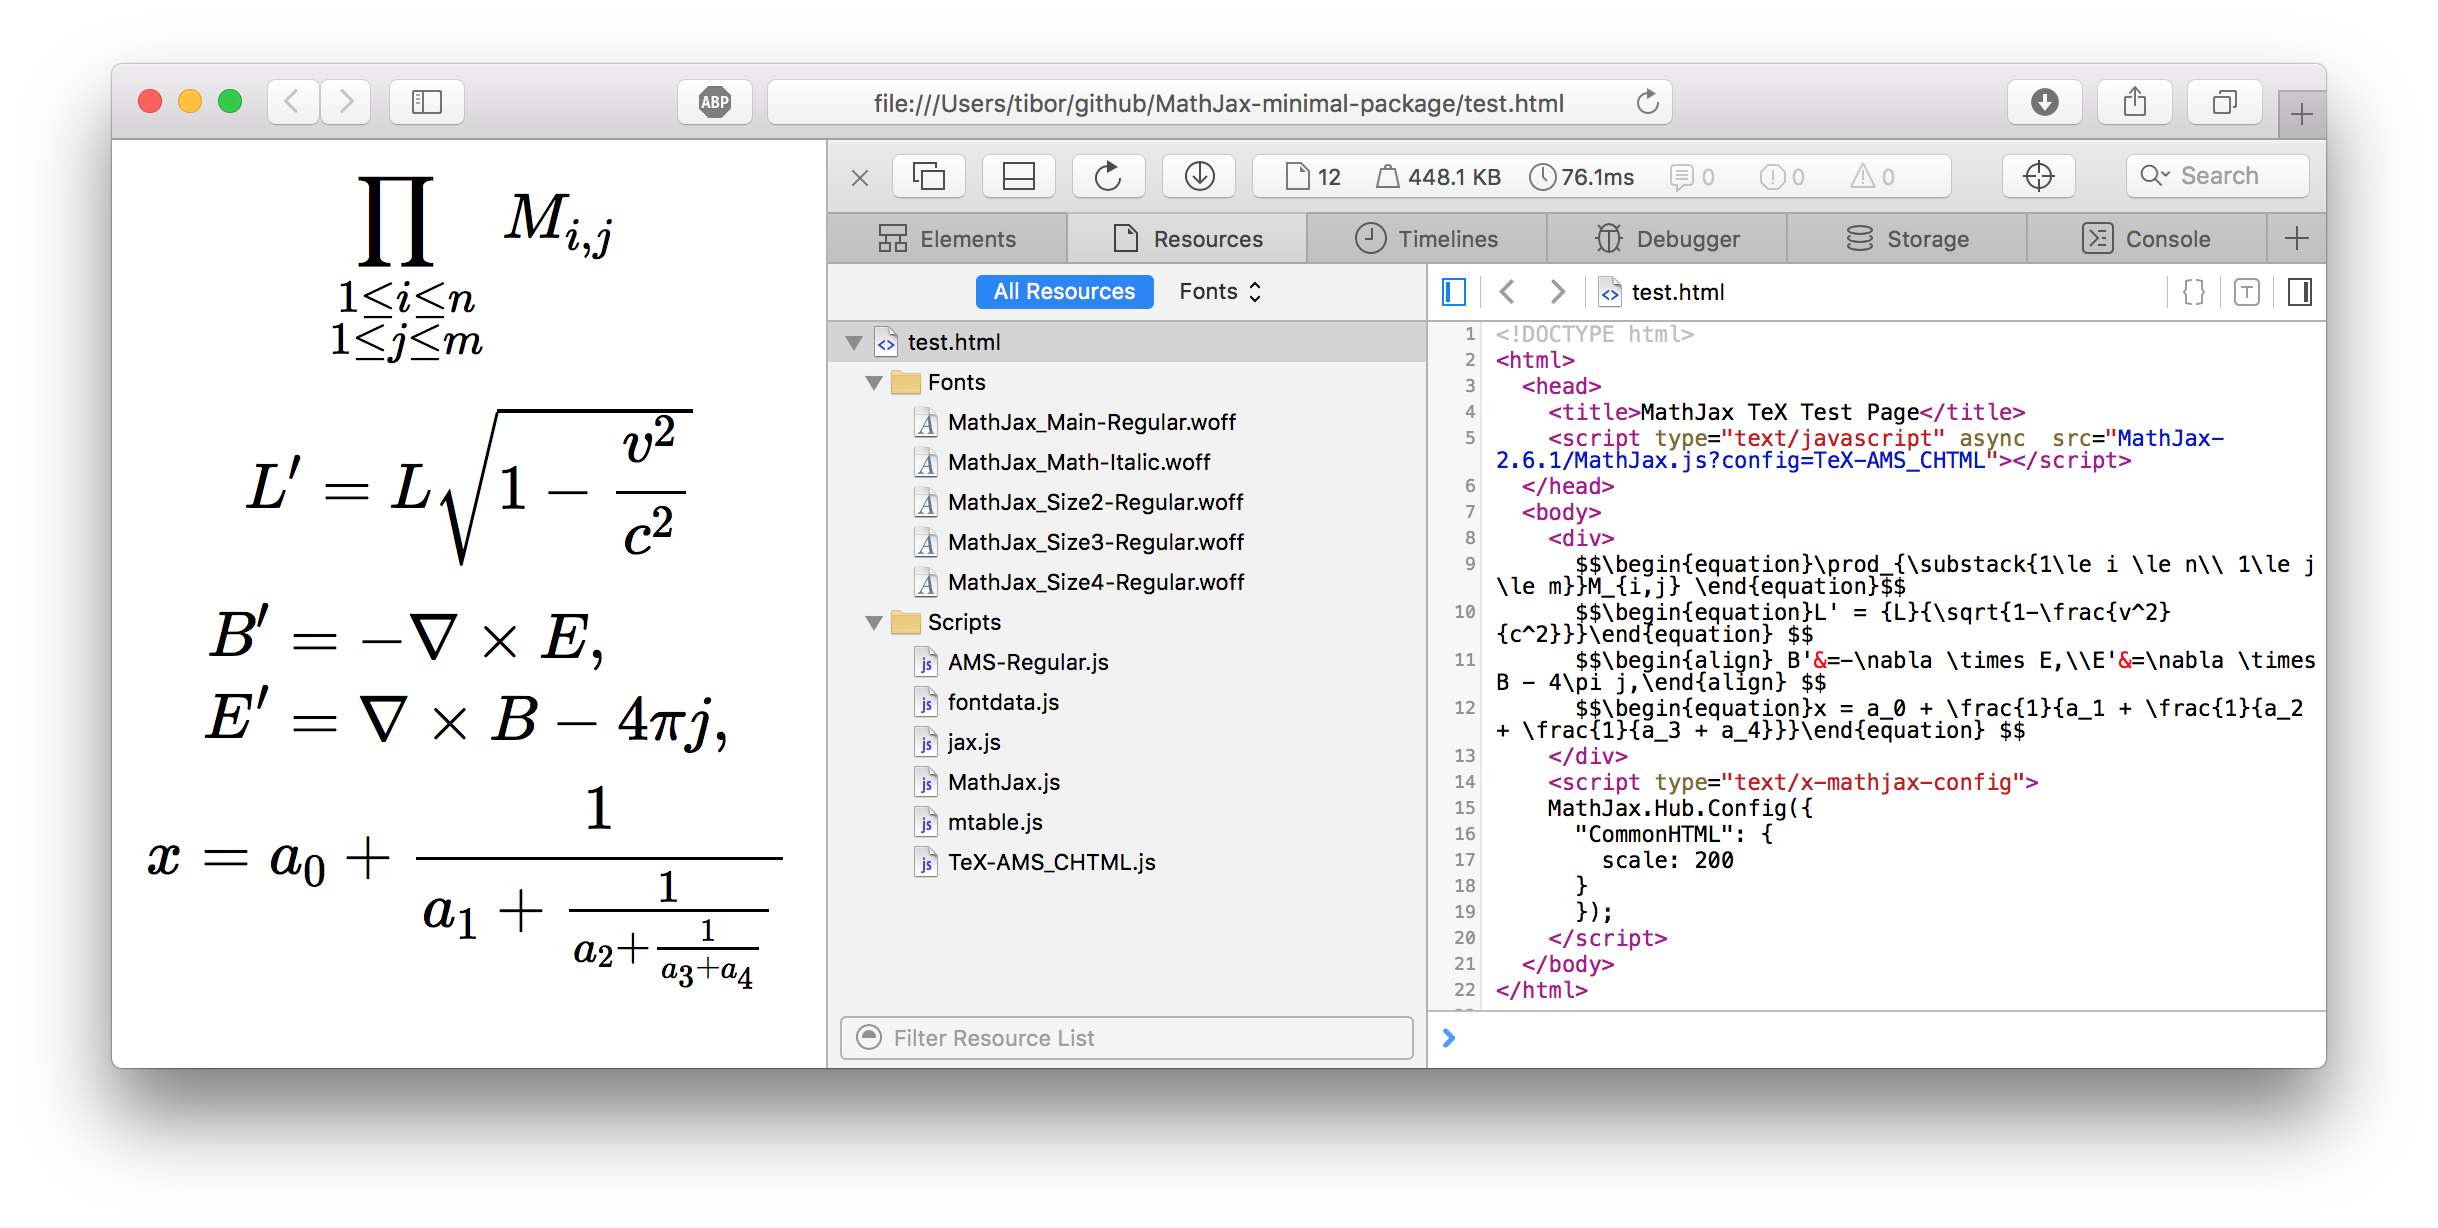 Testing the MathJax package with a small html file.